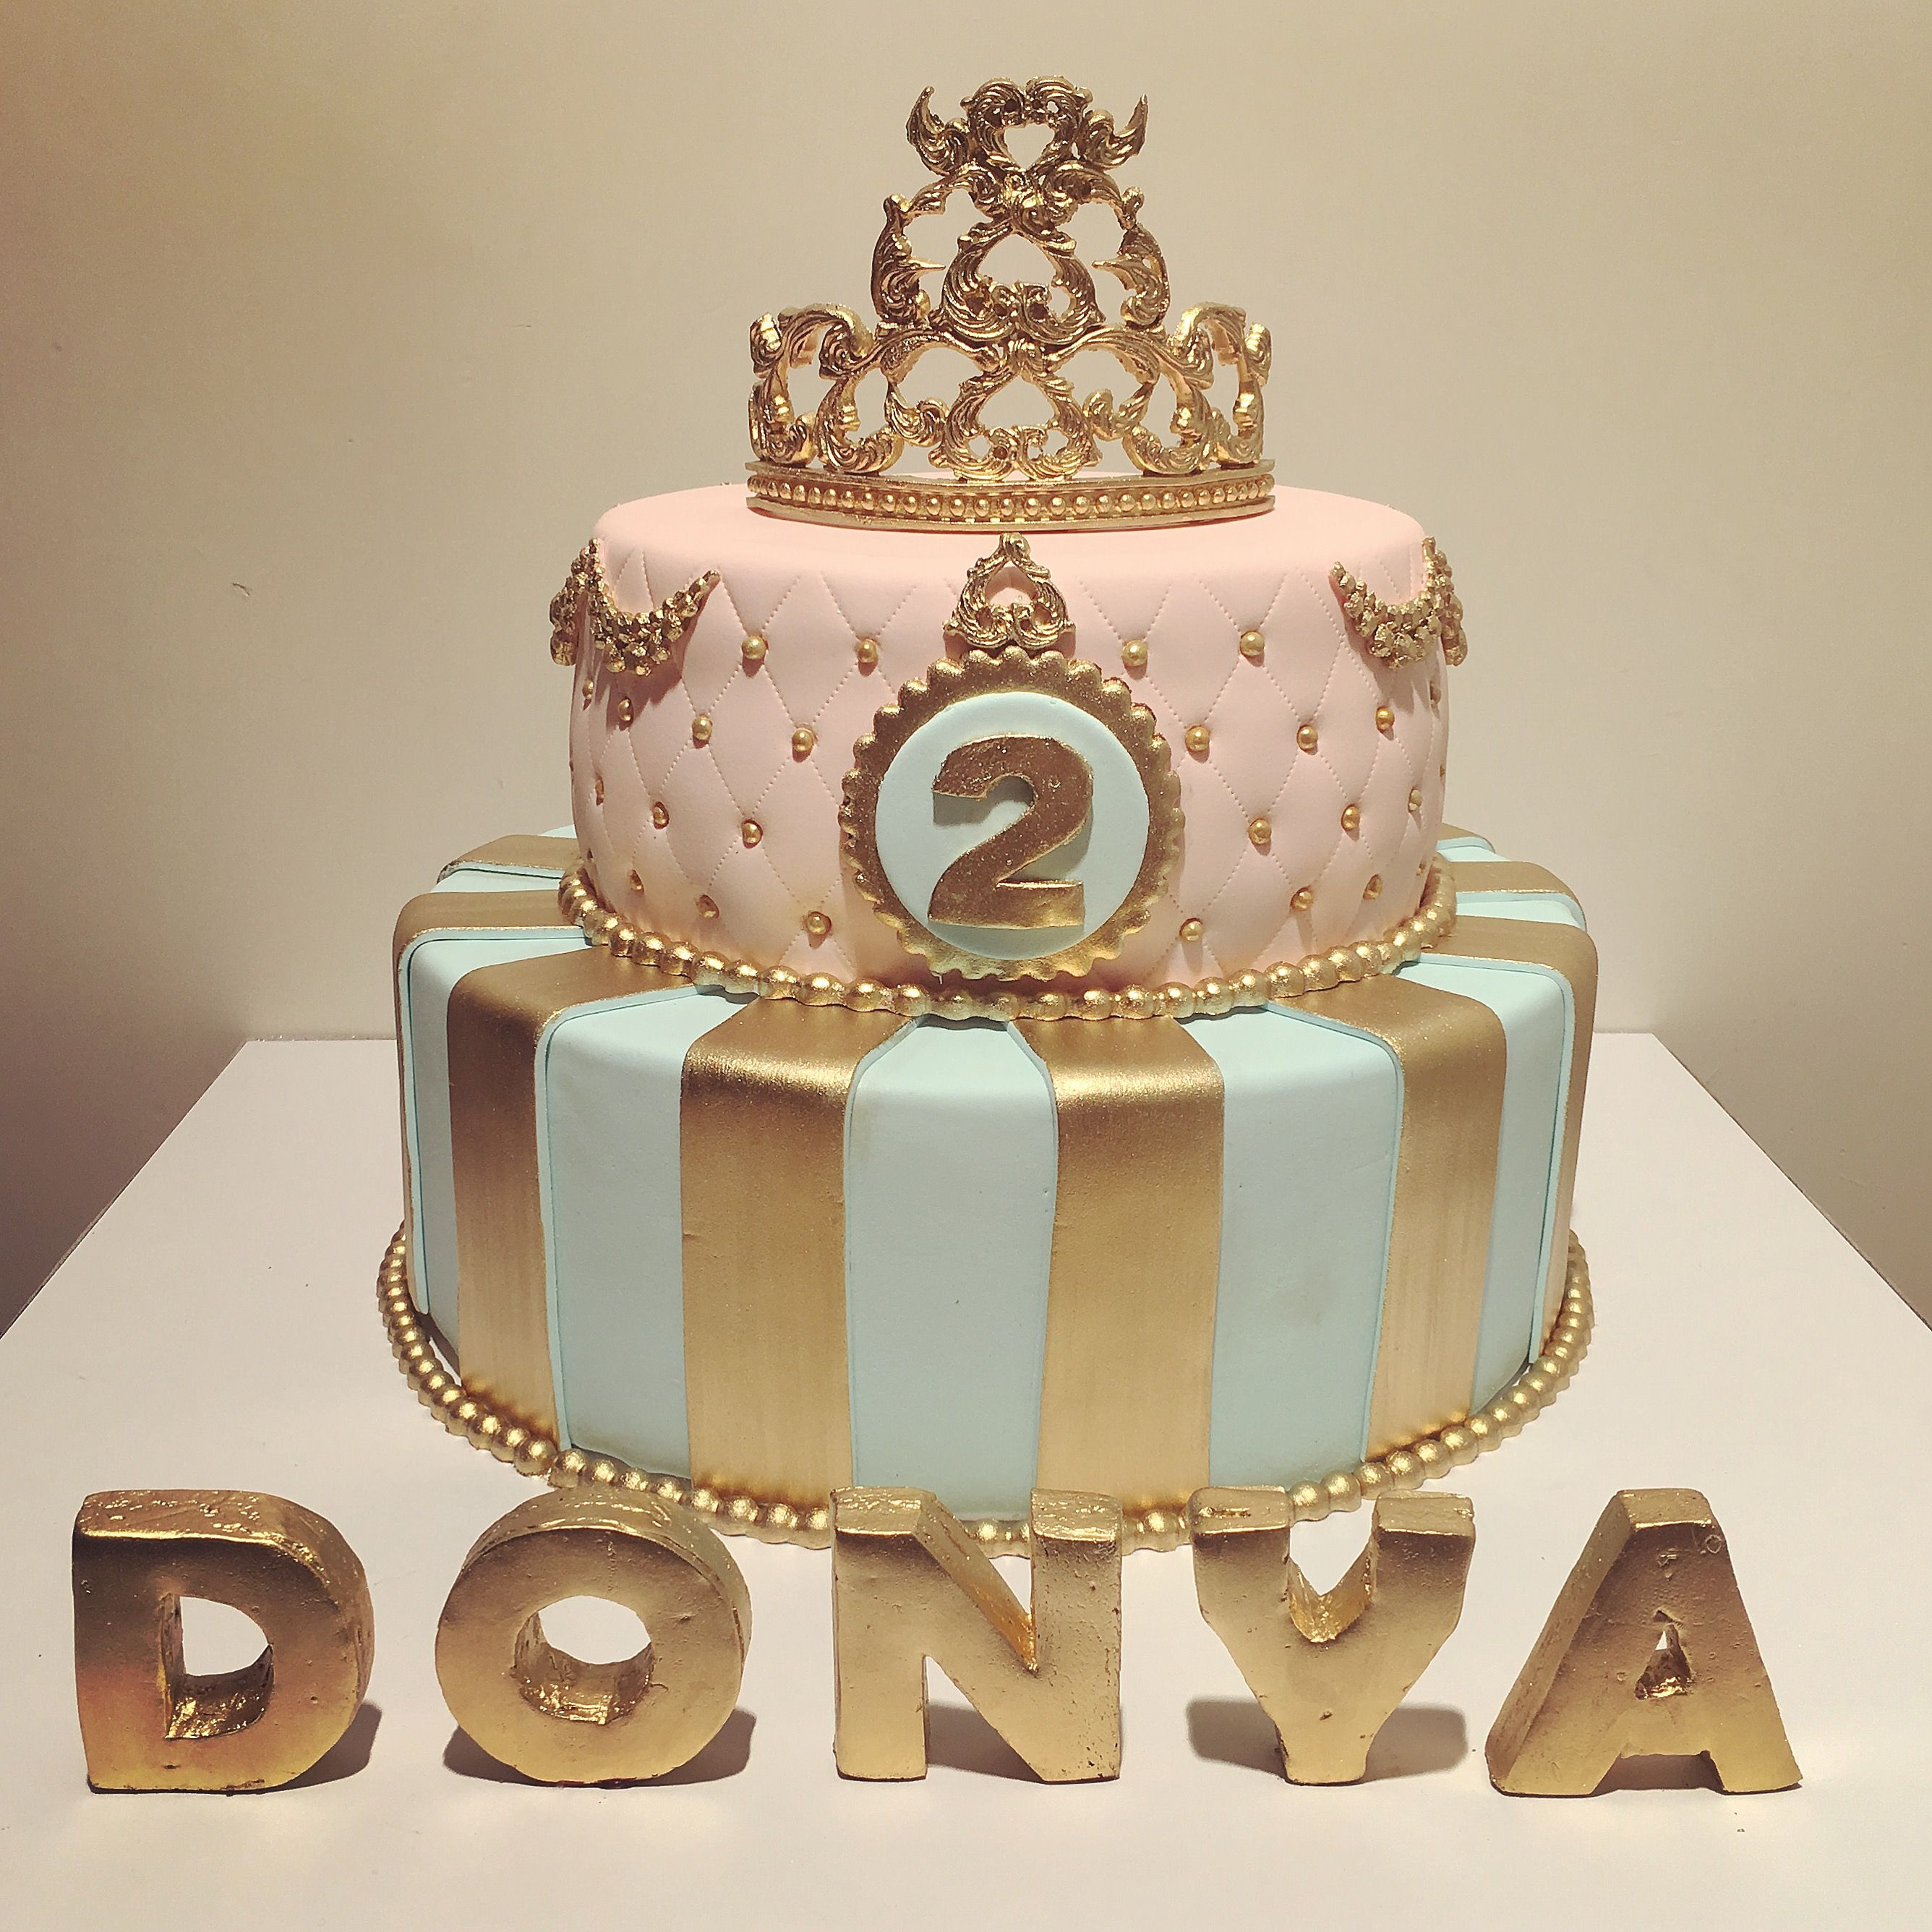 Pleasing Birthday Cake Ideas For 2 Year Old Baby Girl The Cake Boutique Funny Birthday Cards Online Alyptdamsfinfo